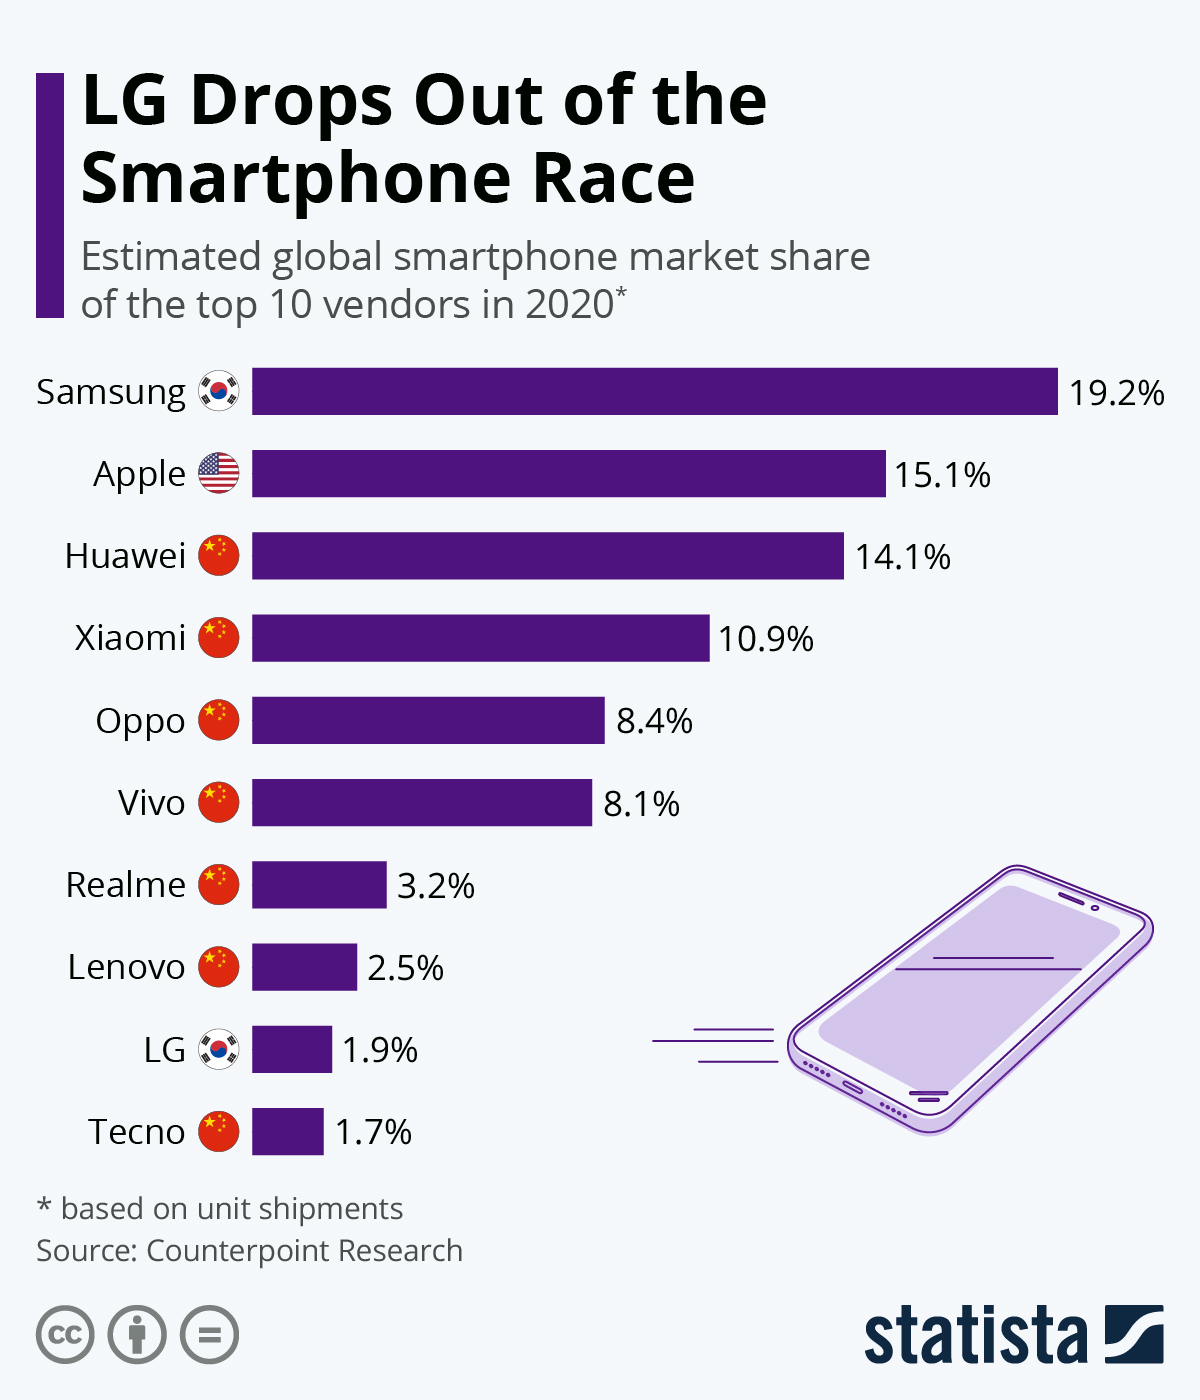 Image-LG-Drops-Out-of-the-Smartphone-Race-mediabrief.jpeg